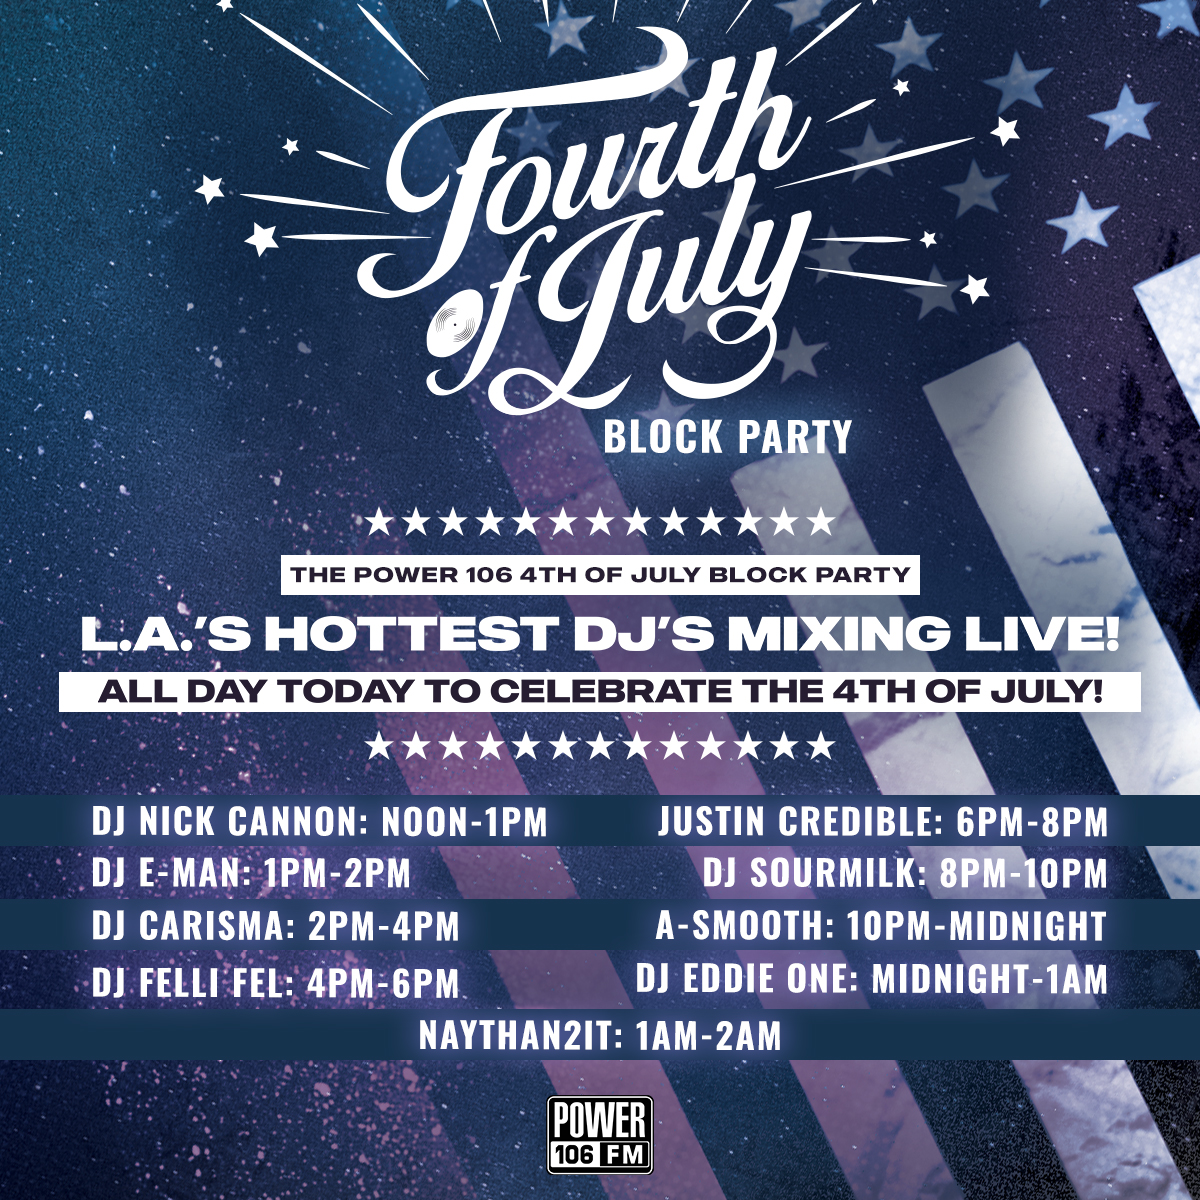 Let's Go‼️ Be sure to turn us up today for the #POWER106 4th of July Block Party!  Stay connected, take us with you and LISTEN LIVE on our Streaming App, via your Smart Speakers, and OF COURSE on https://t.co/RjIeNgYj8V. https://t.co/mLhVFQ5UDD